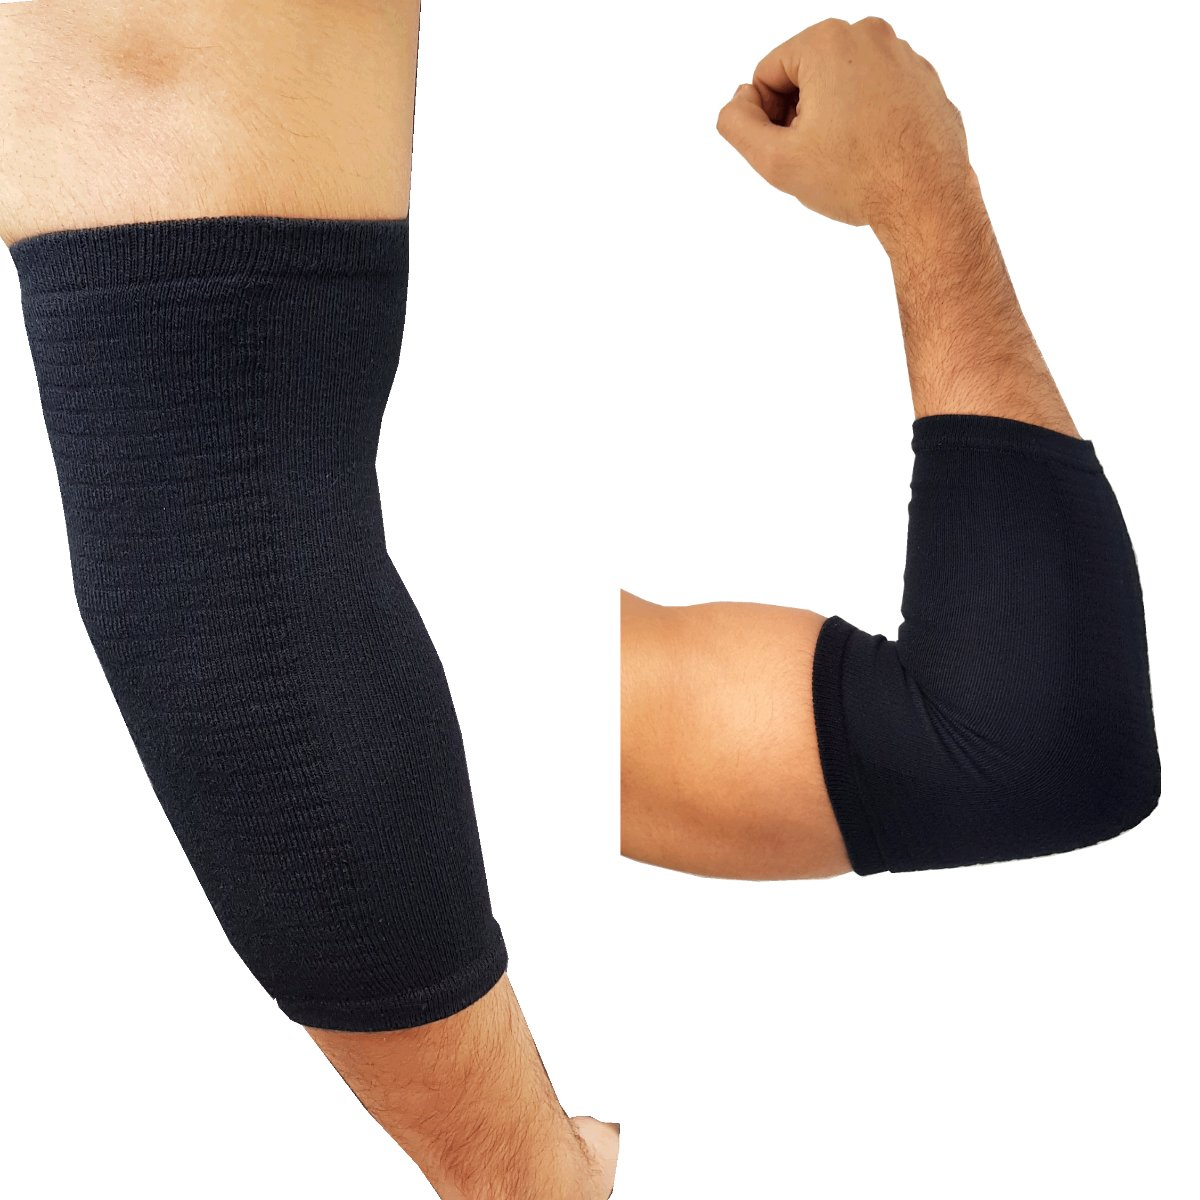 689f1d3931 Medipaq® Therapeutic GEL Sleeve Elbow Support - Warms & Soothes (1x Support  Black): Amazon.co.uk: Health & Personal Care